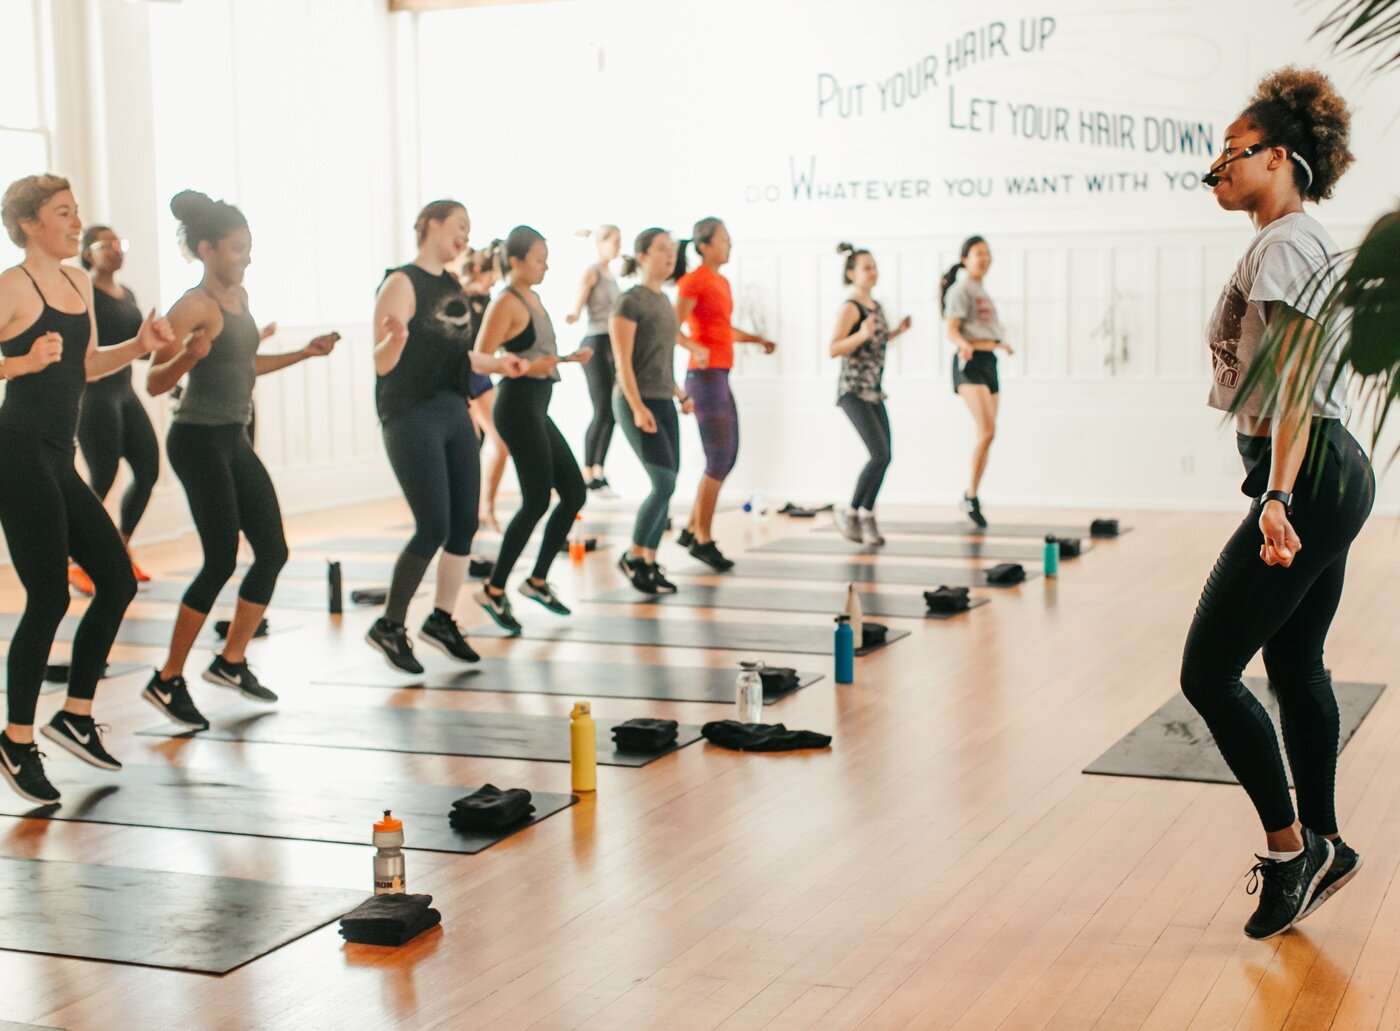 Book a class or event - Check out the public schedule for some opportunities to move your body or learn something new. If you can see it, you can book it.